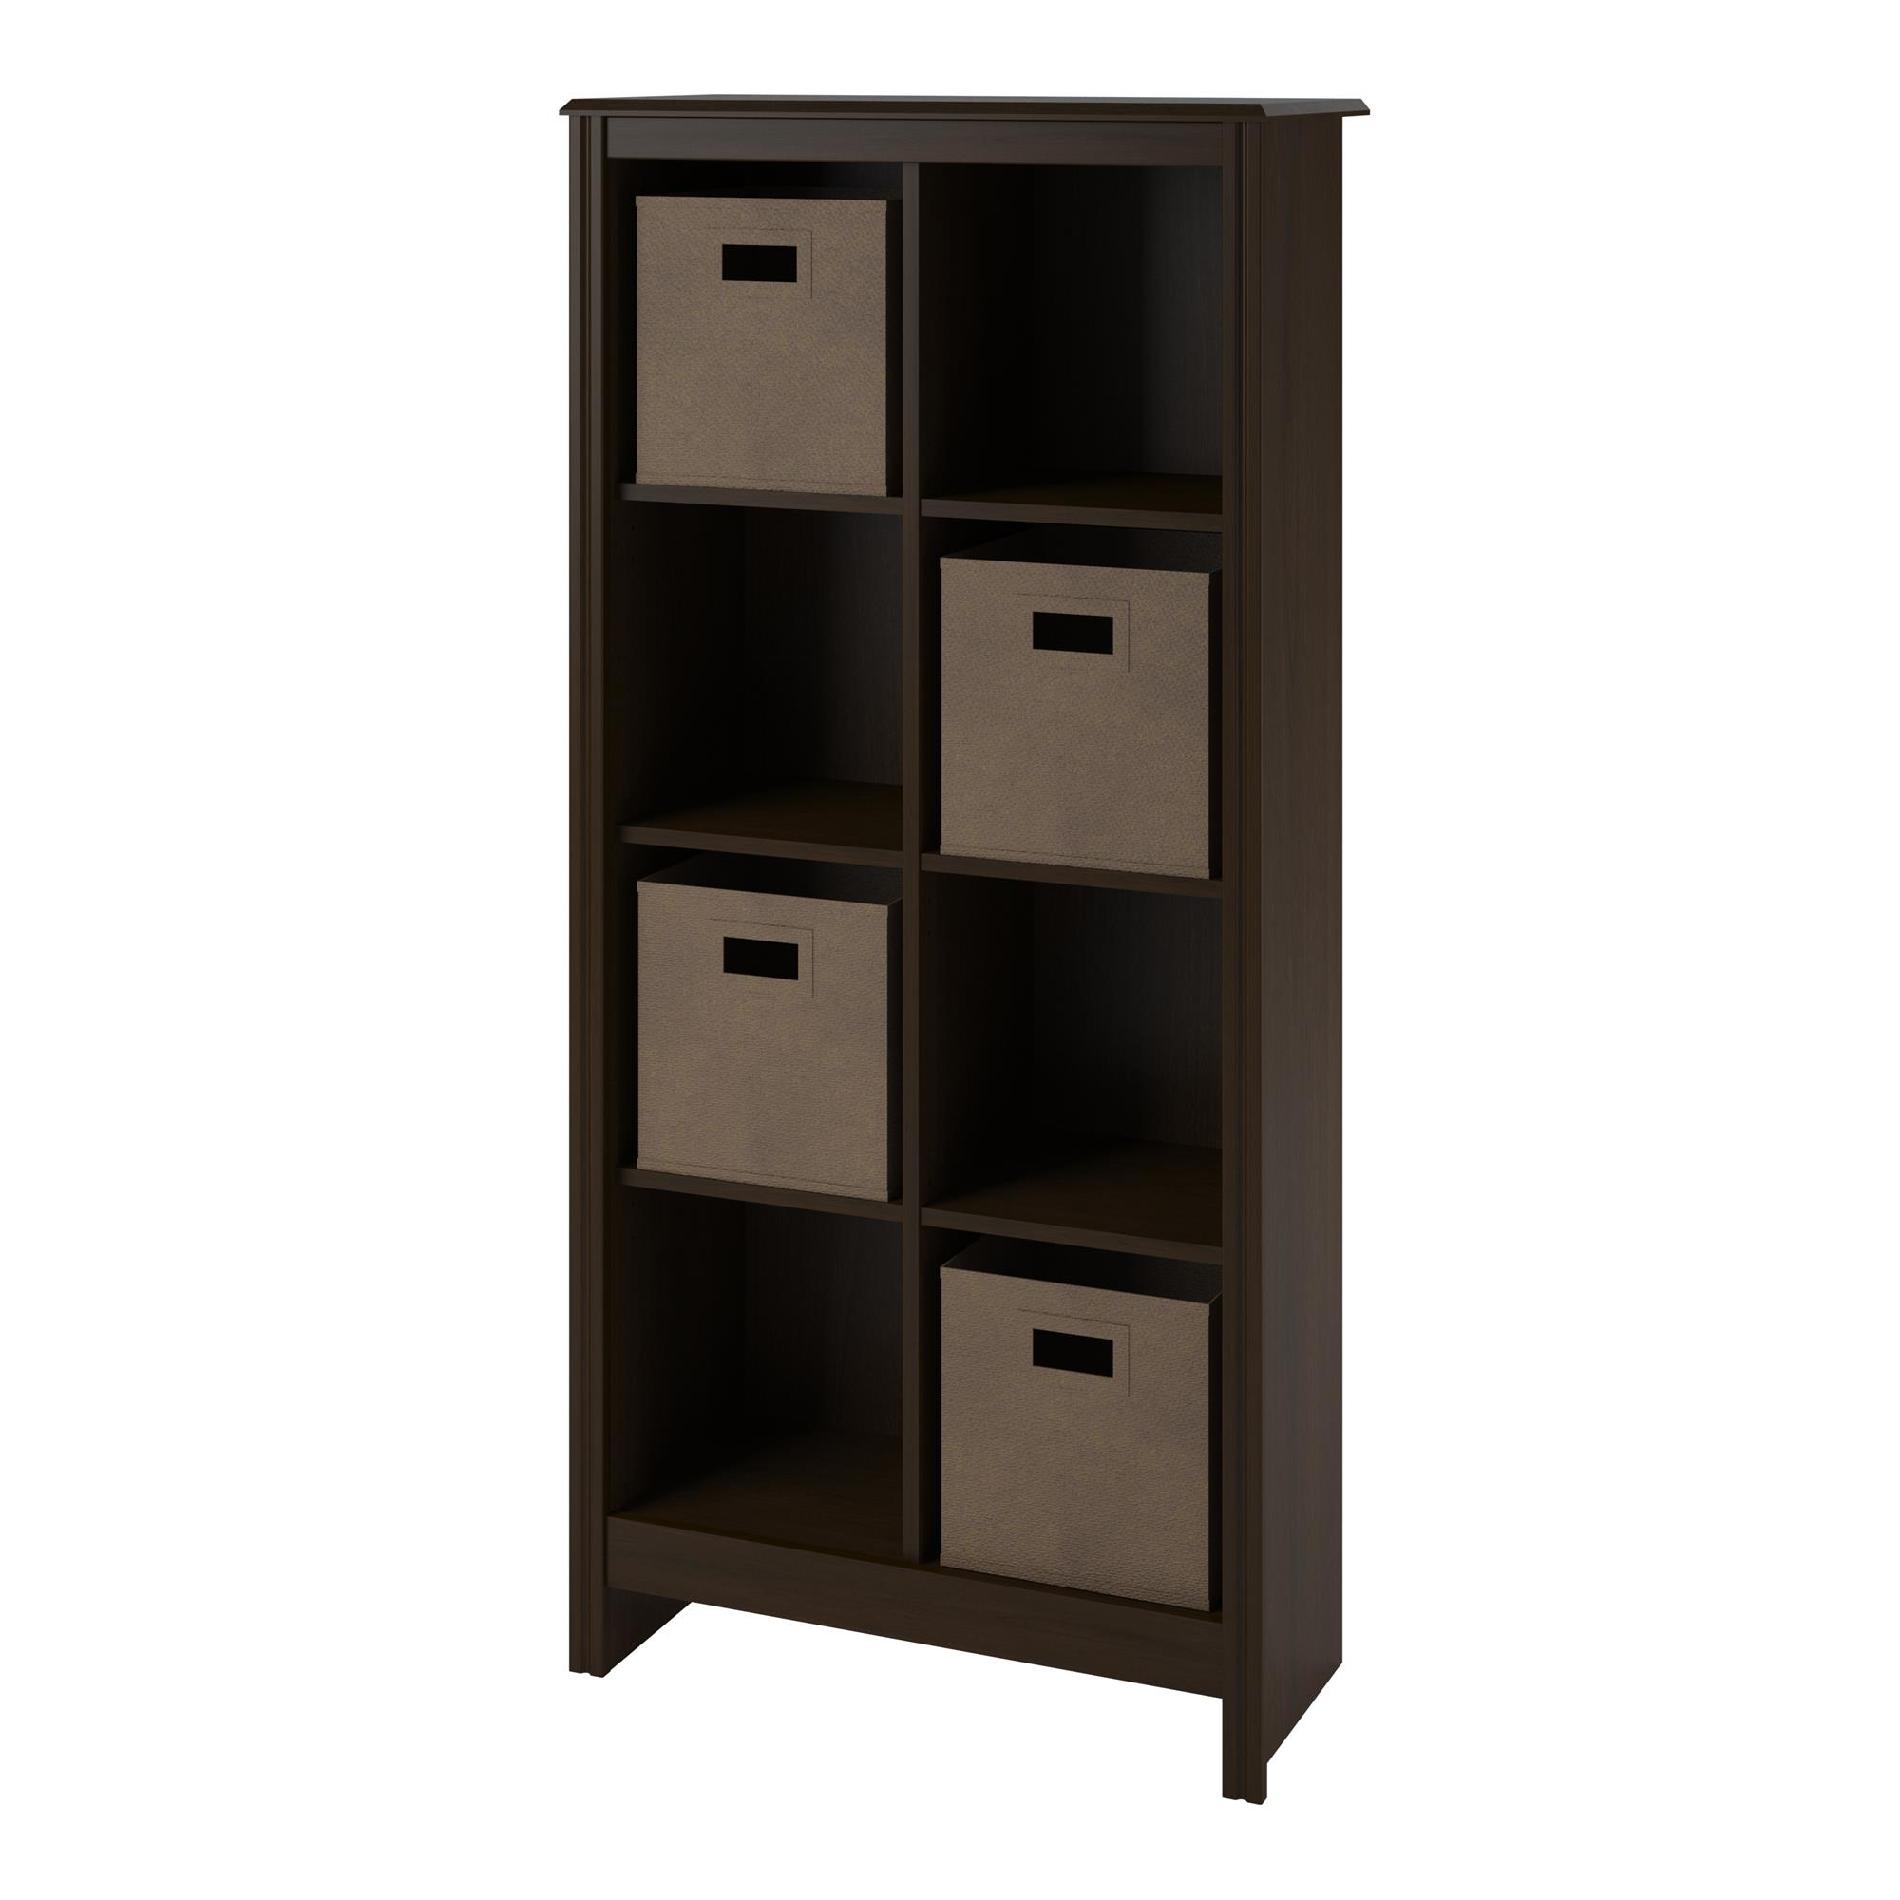 Dorel Home Furnishings 8 Cube Resort Cherry Storage Cubby Bookcase With 2  Storage Bins 1